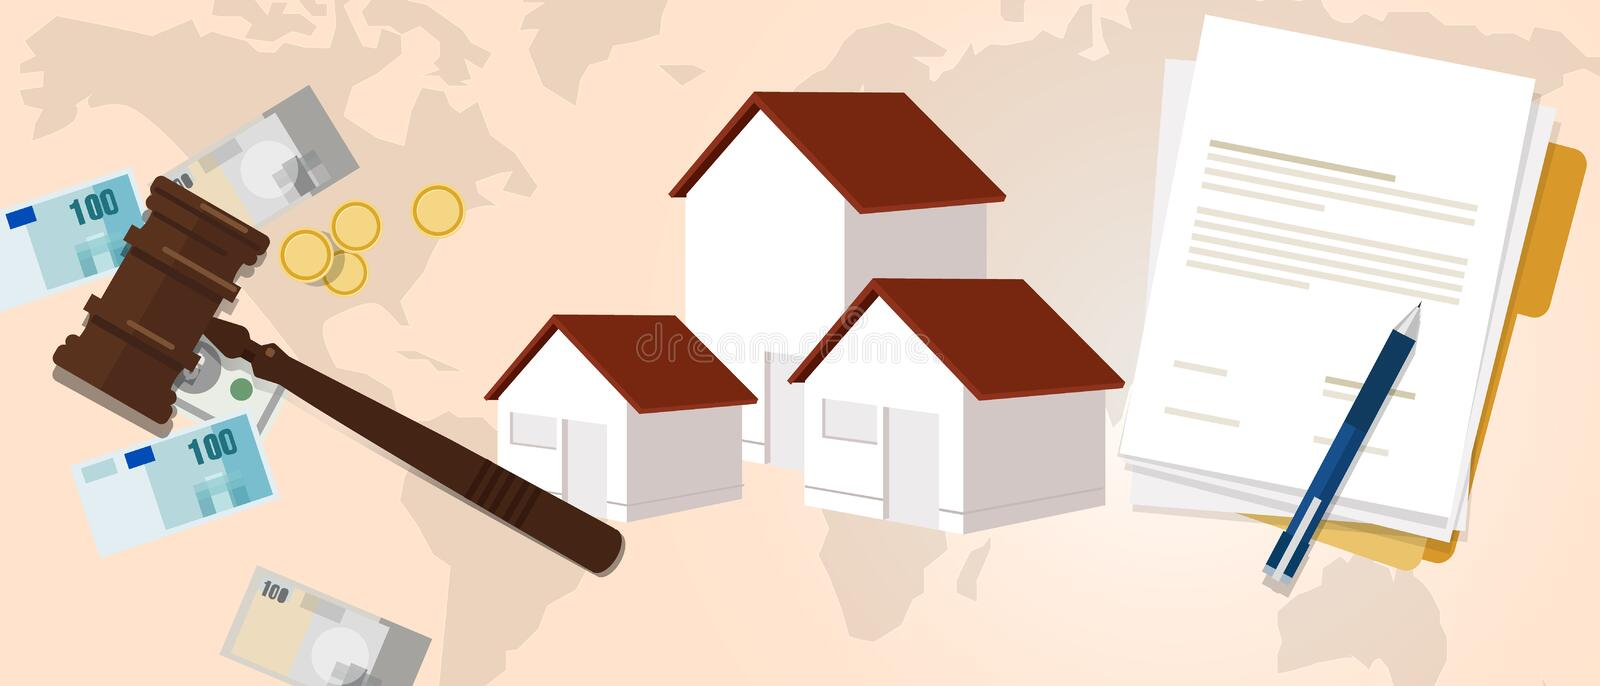 Property housing home law gavel wooden hammer justice legal judicial investment money royalty free illustration